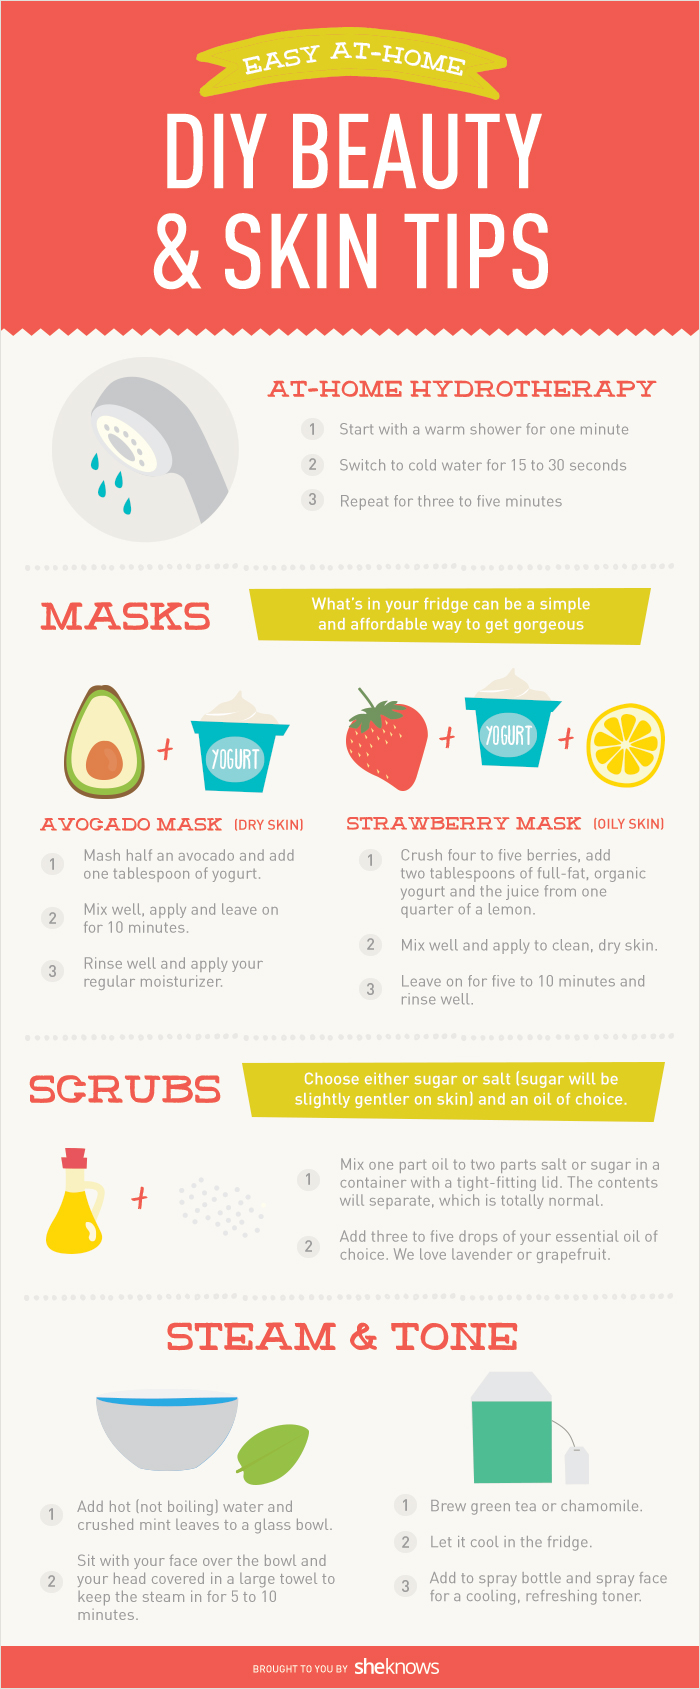 Easy at-home DIY beauty and skin tips – SheKnows